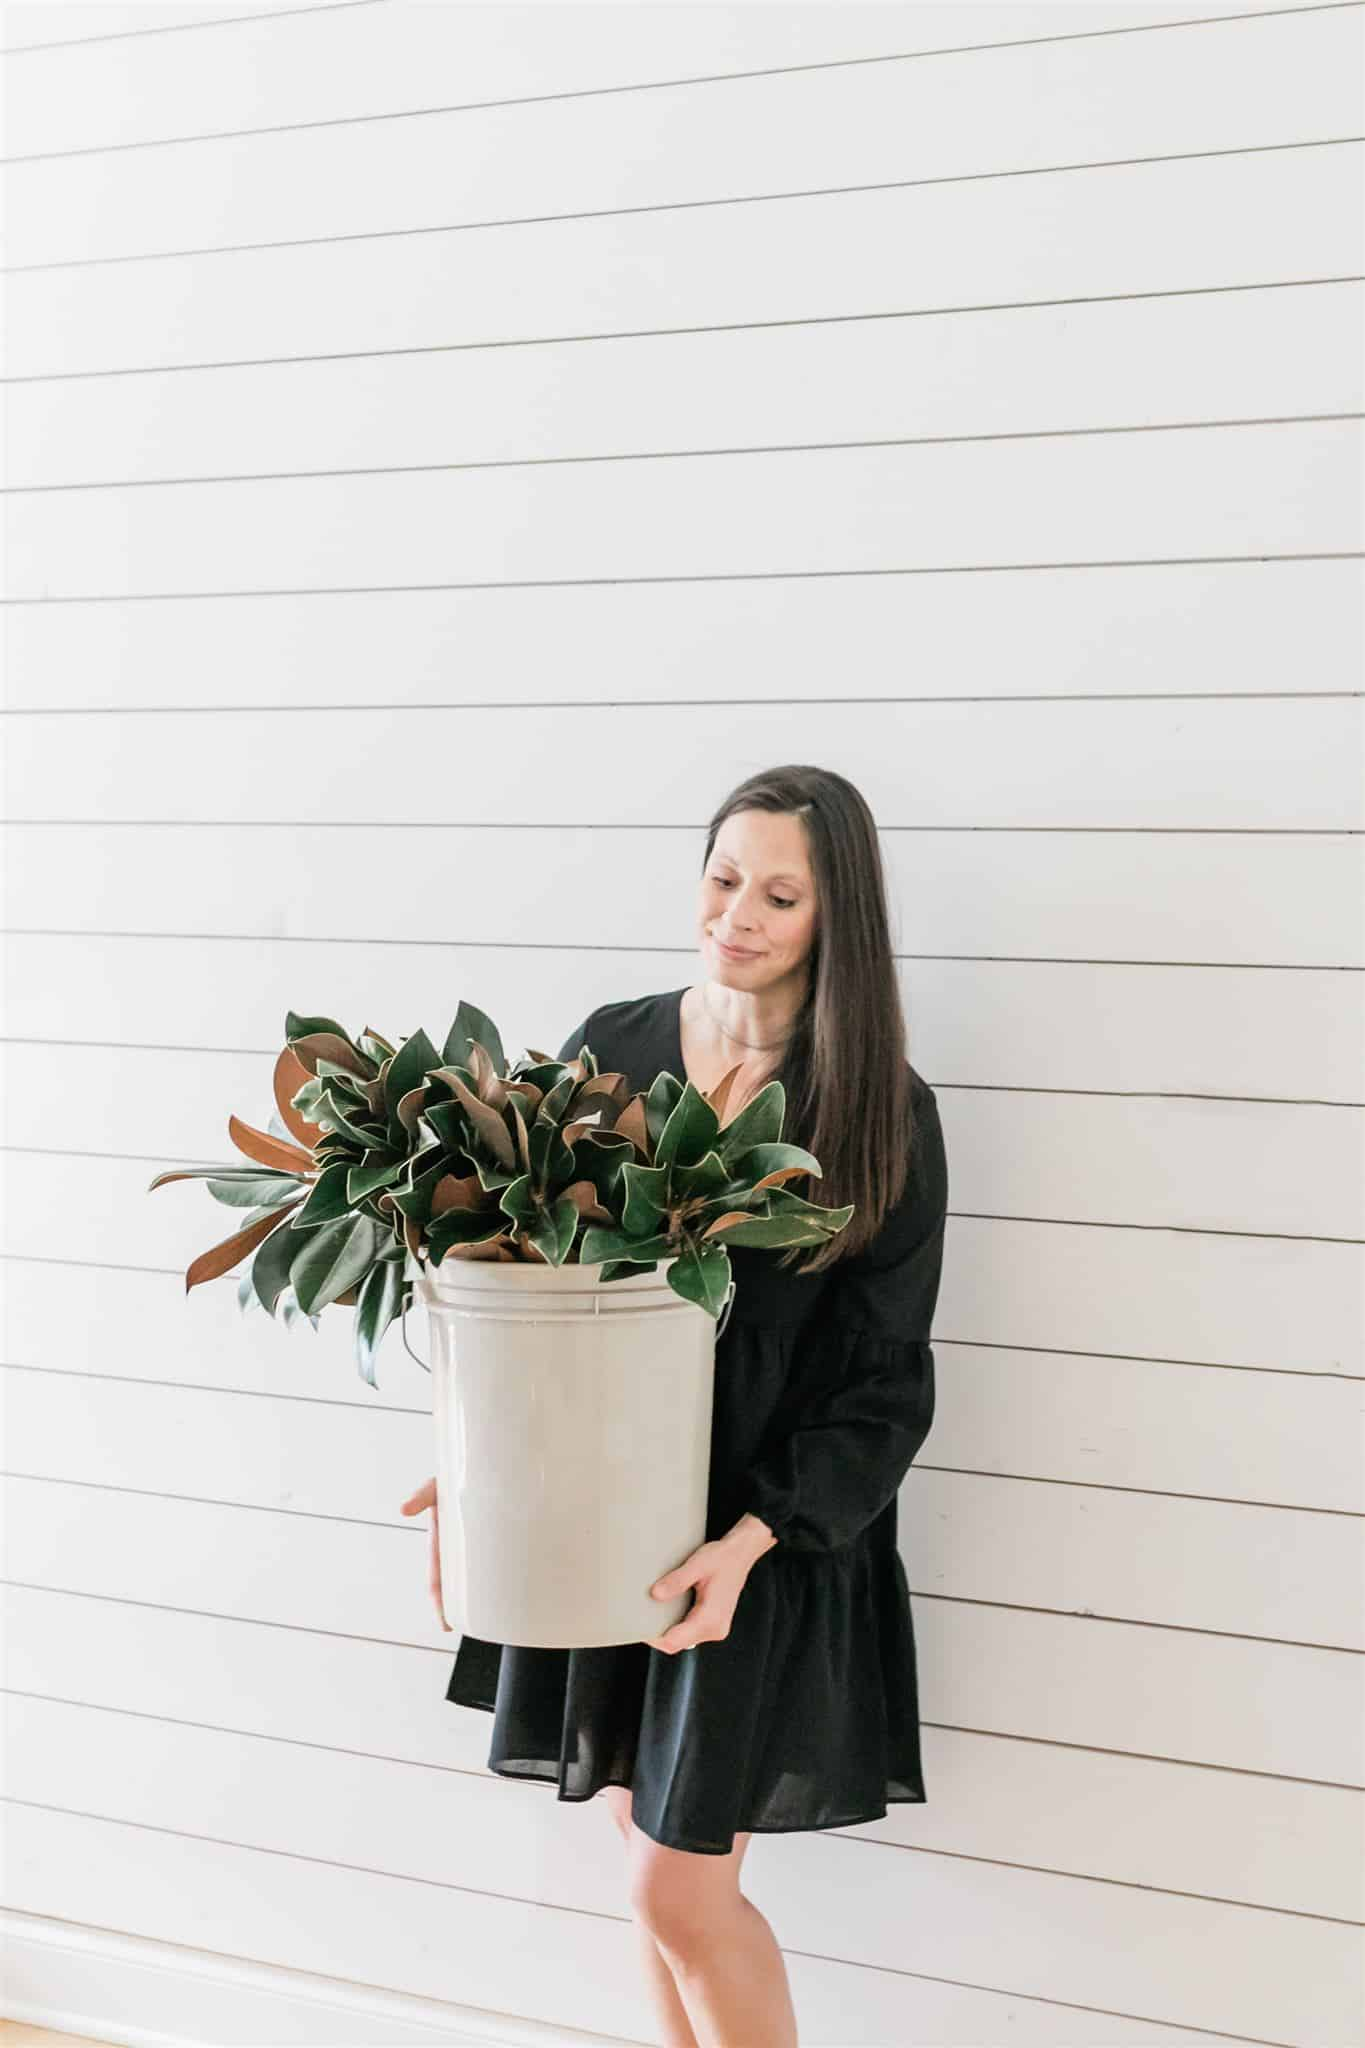 A DIY and how to make a real magnolia wreath for less than $20 using live clippings. #magnoliawreath #diywreath #wreathtutorial